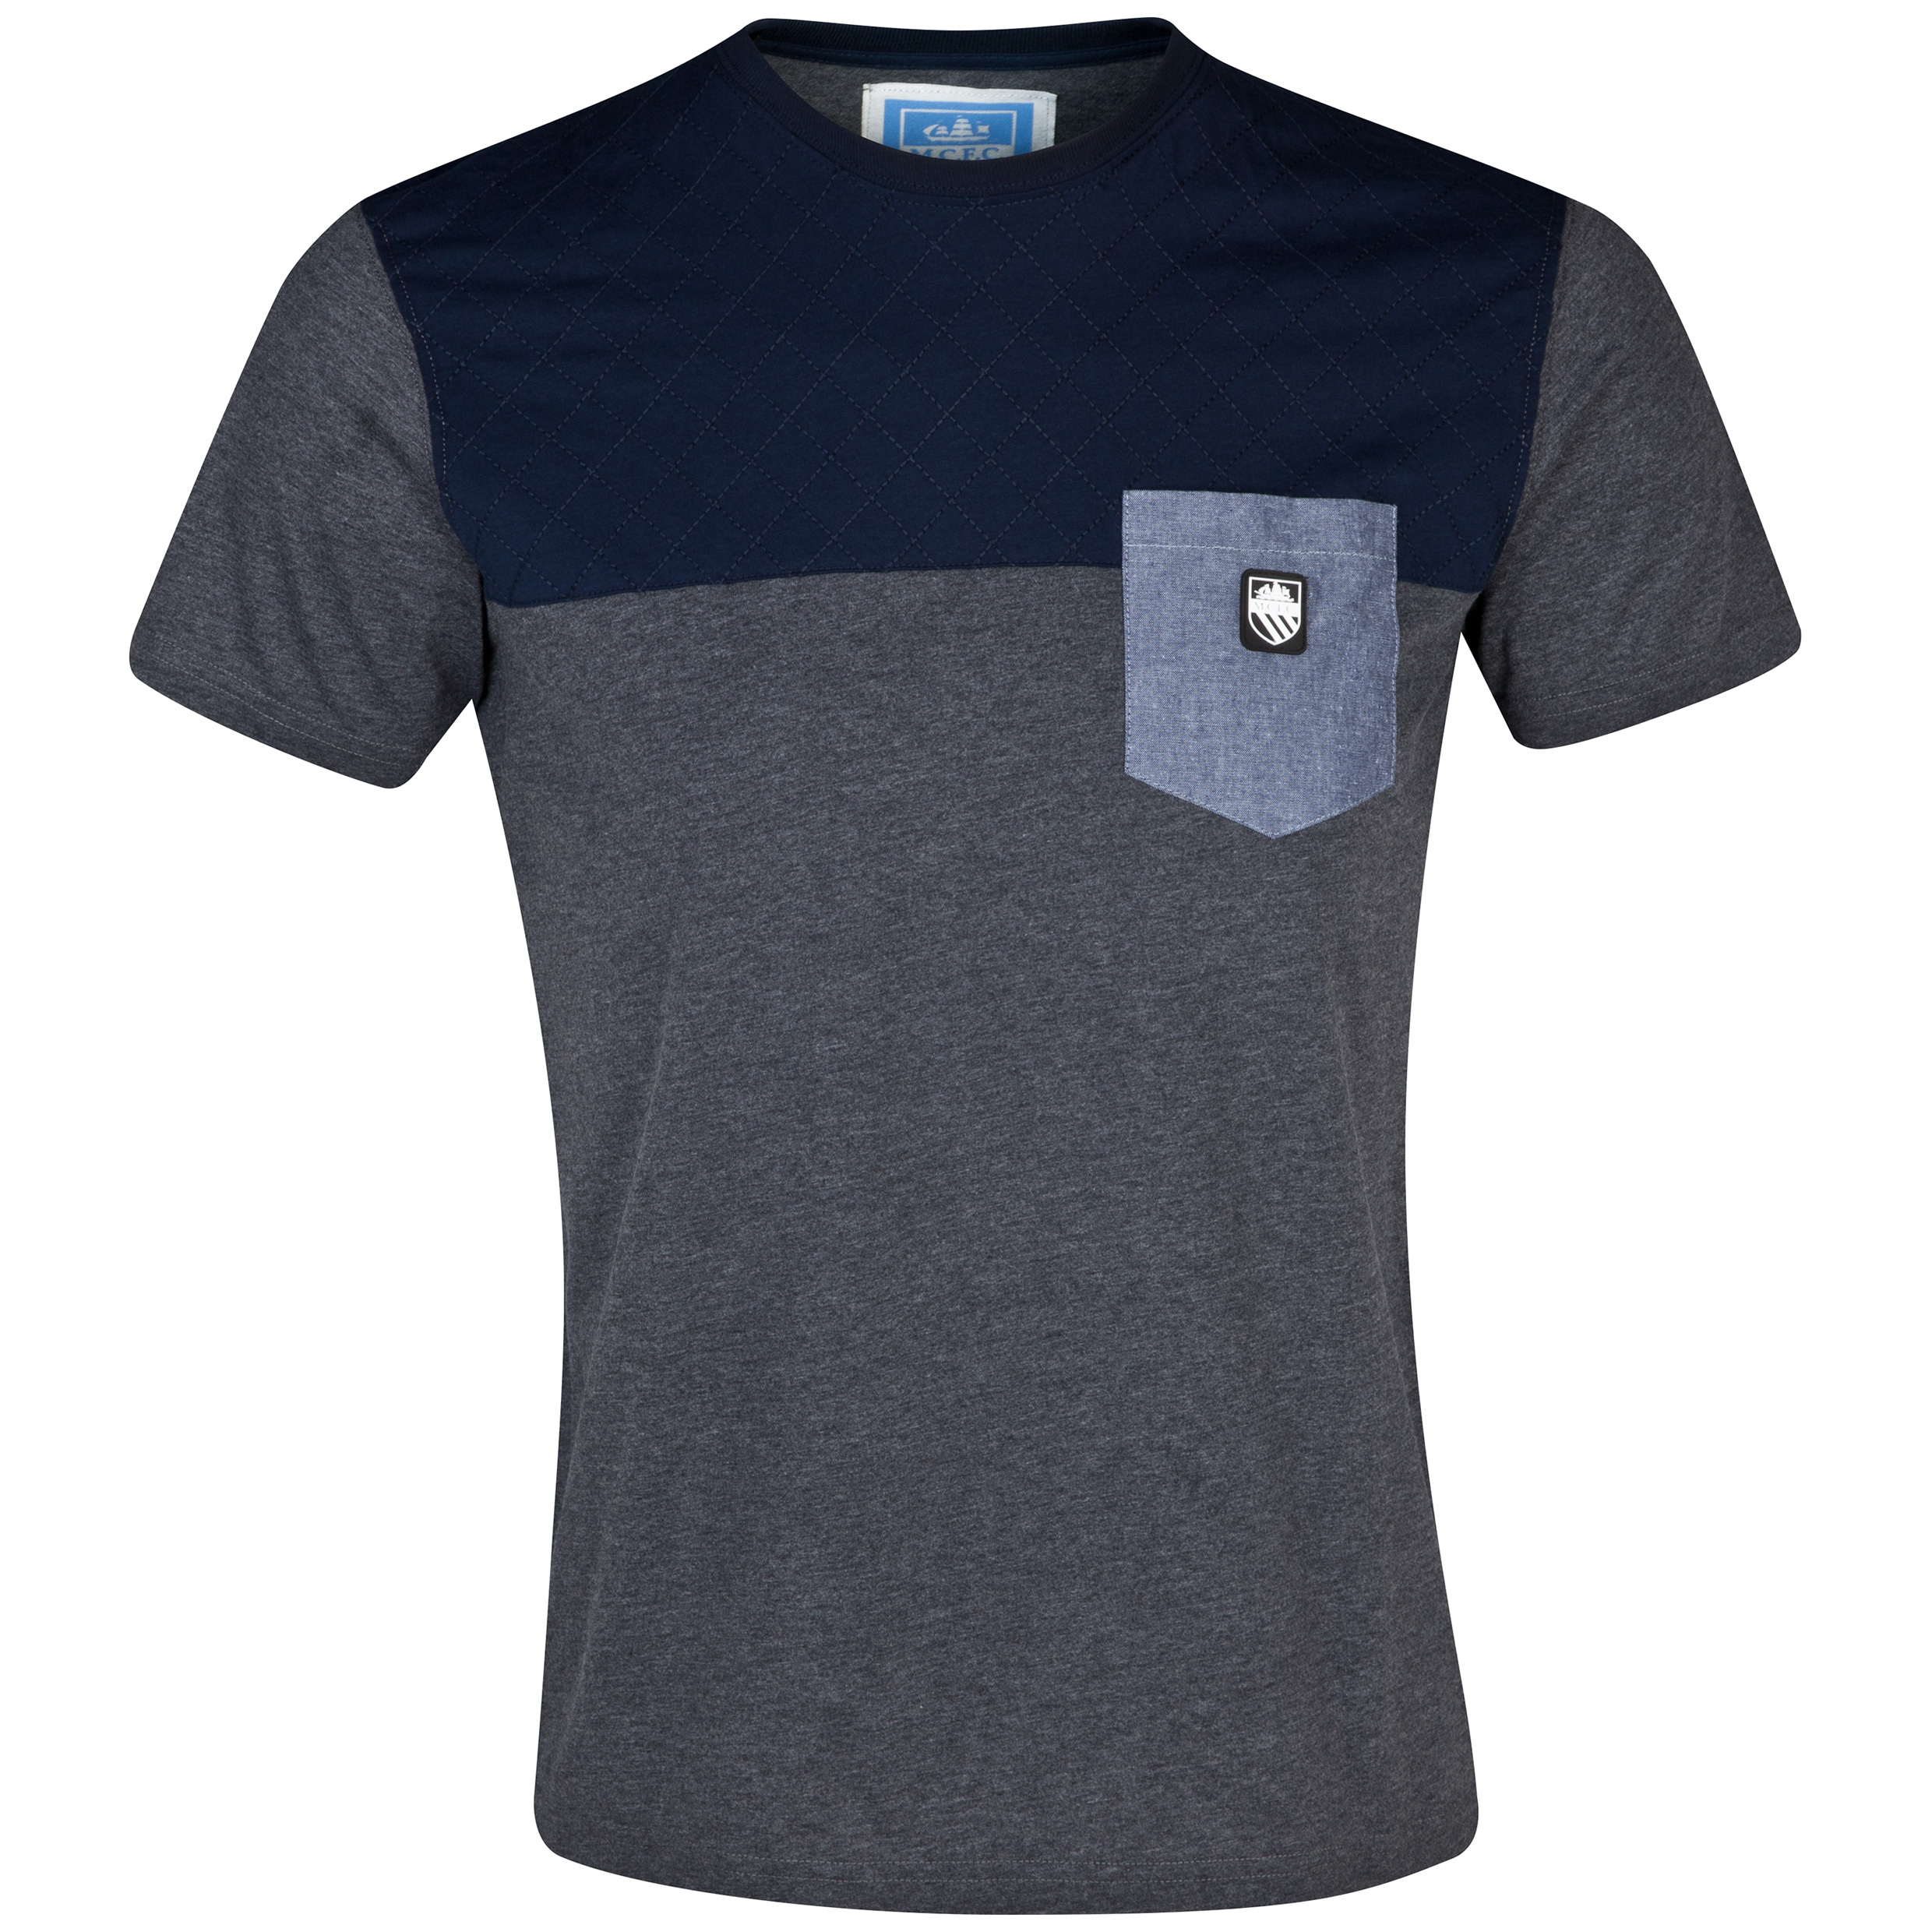 Manchester City Jackson T-Shirt - Mens Charcoal